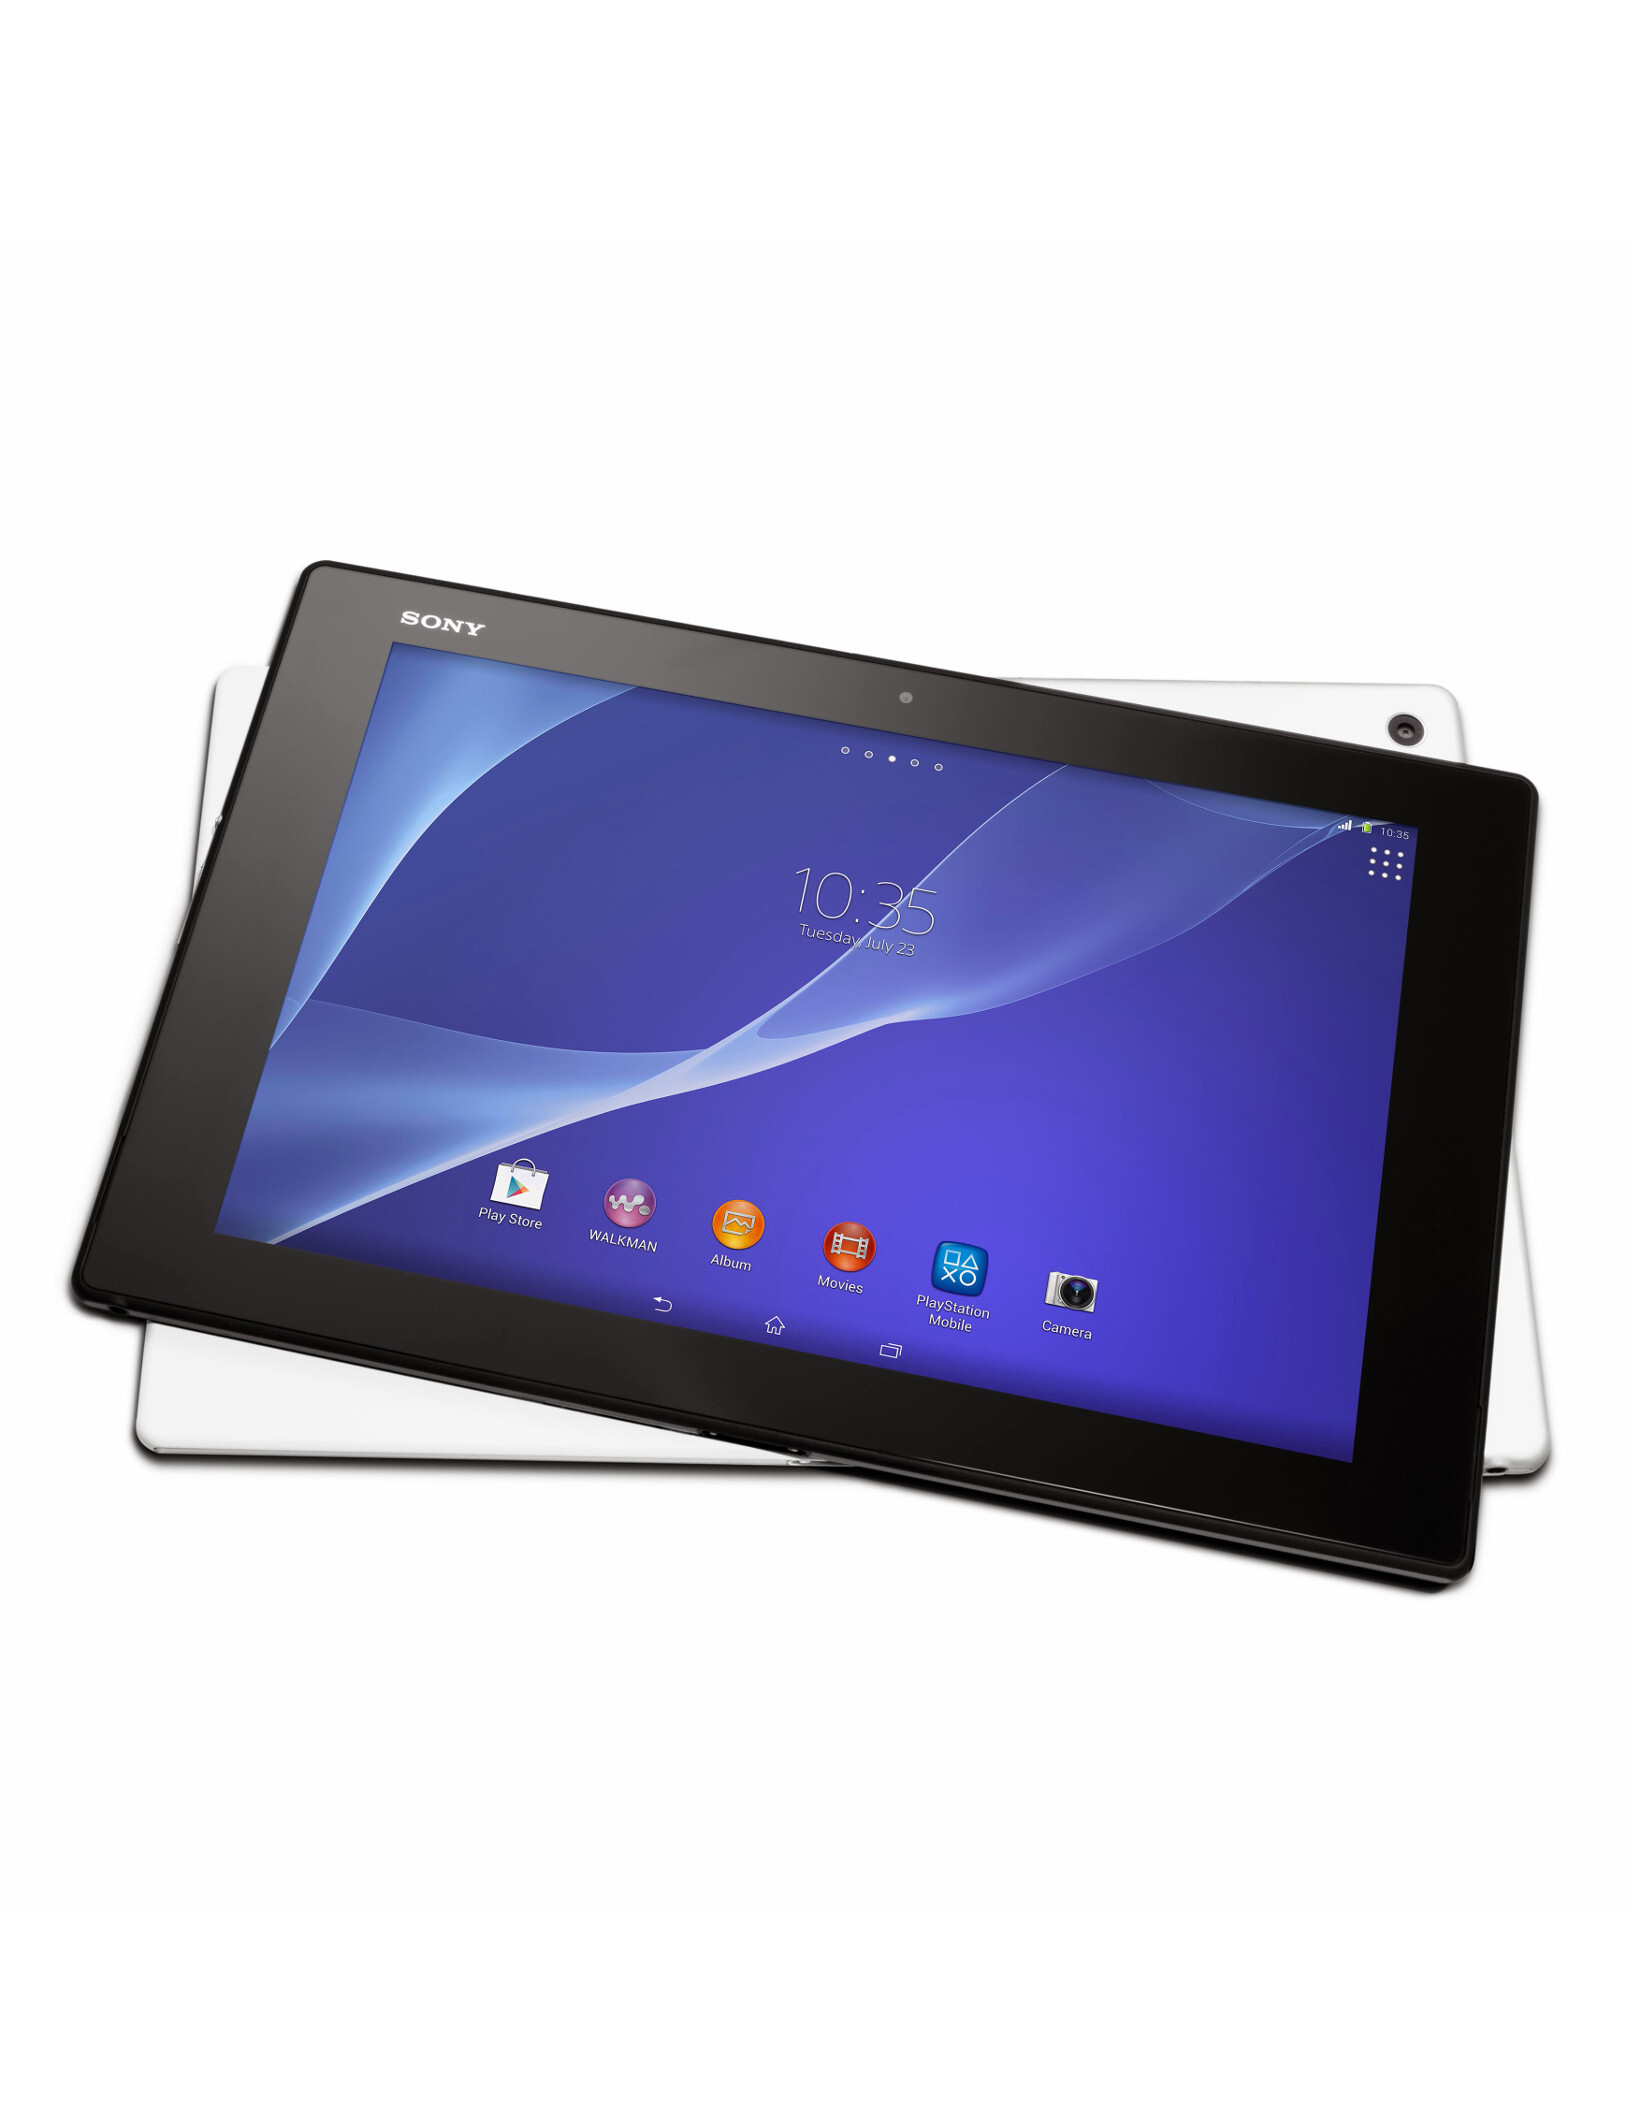 Sony Xperia Z2 Tablet Featured in Best TabletsXperia Z2 Tablet White